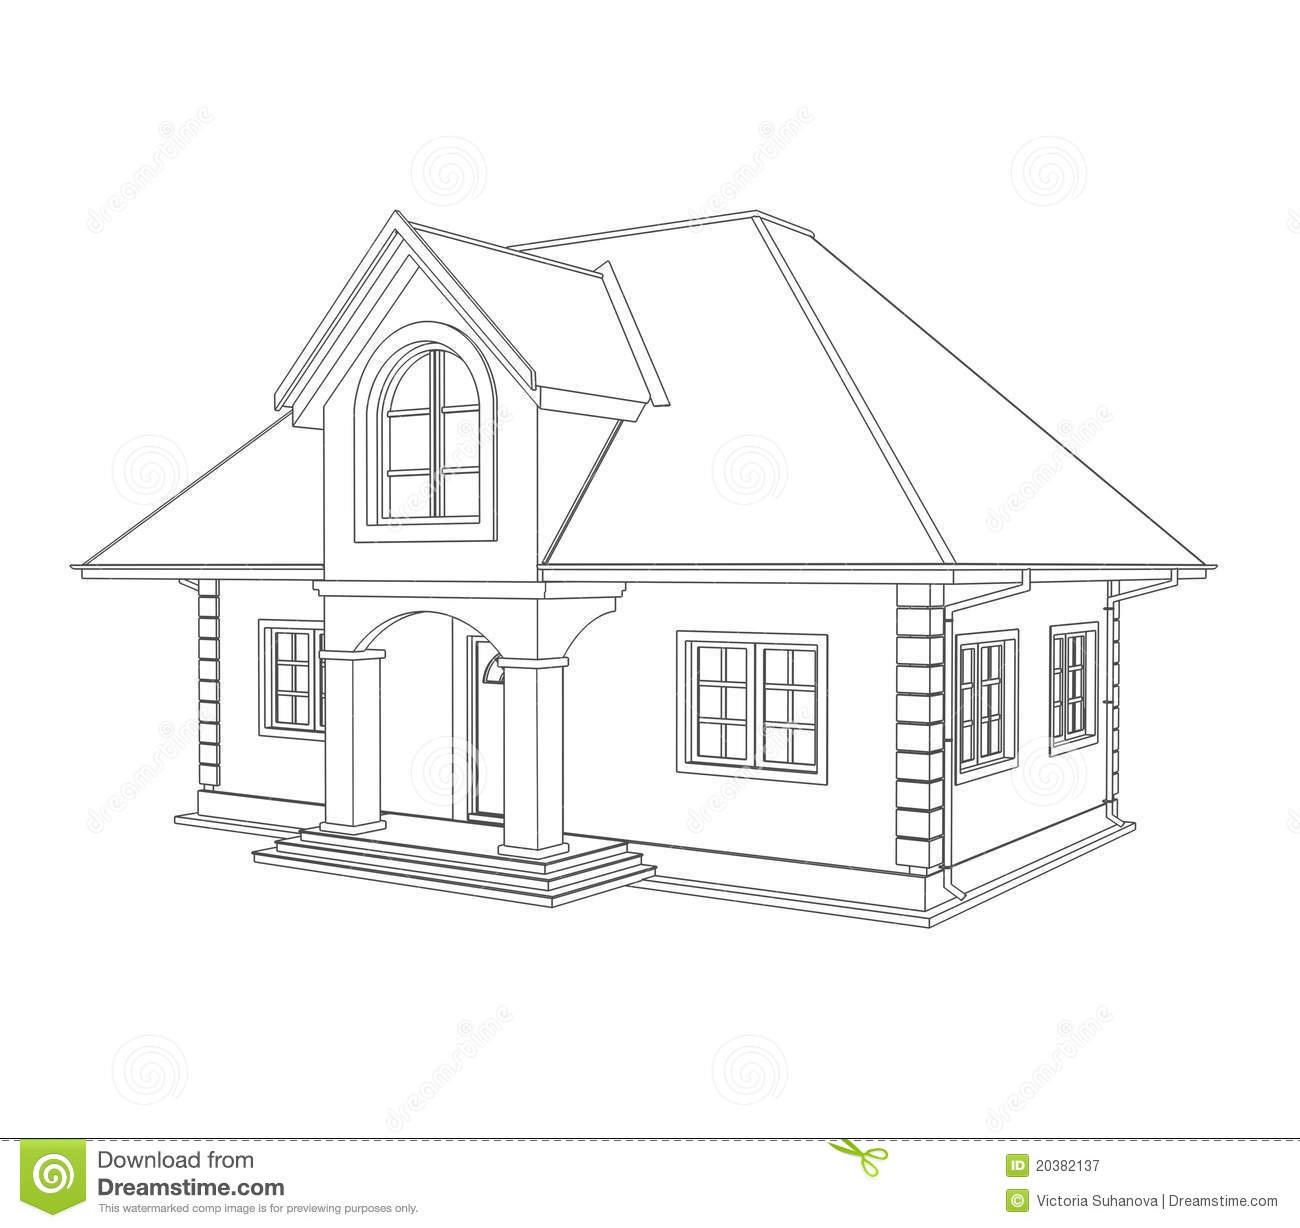 Simple pictures of houses to draw house plan 2017 for Sketch house plans free